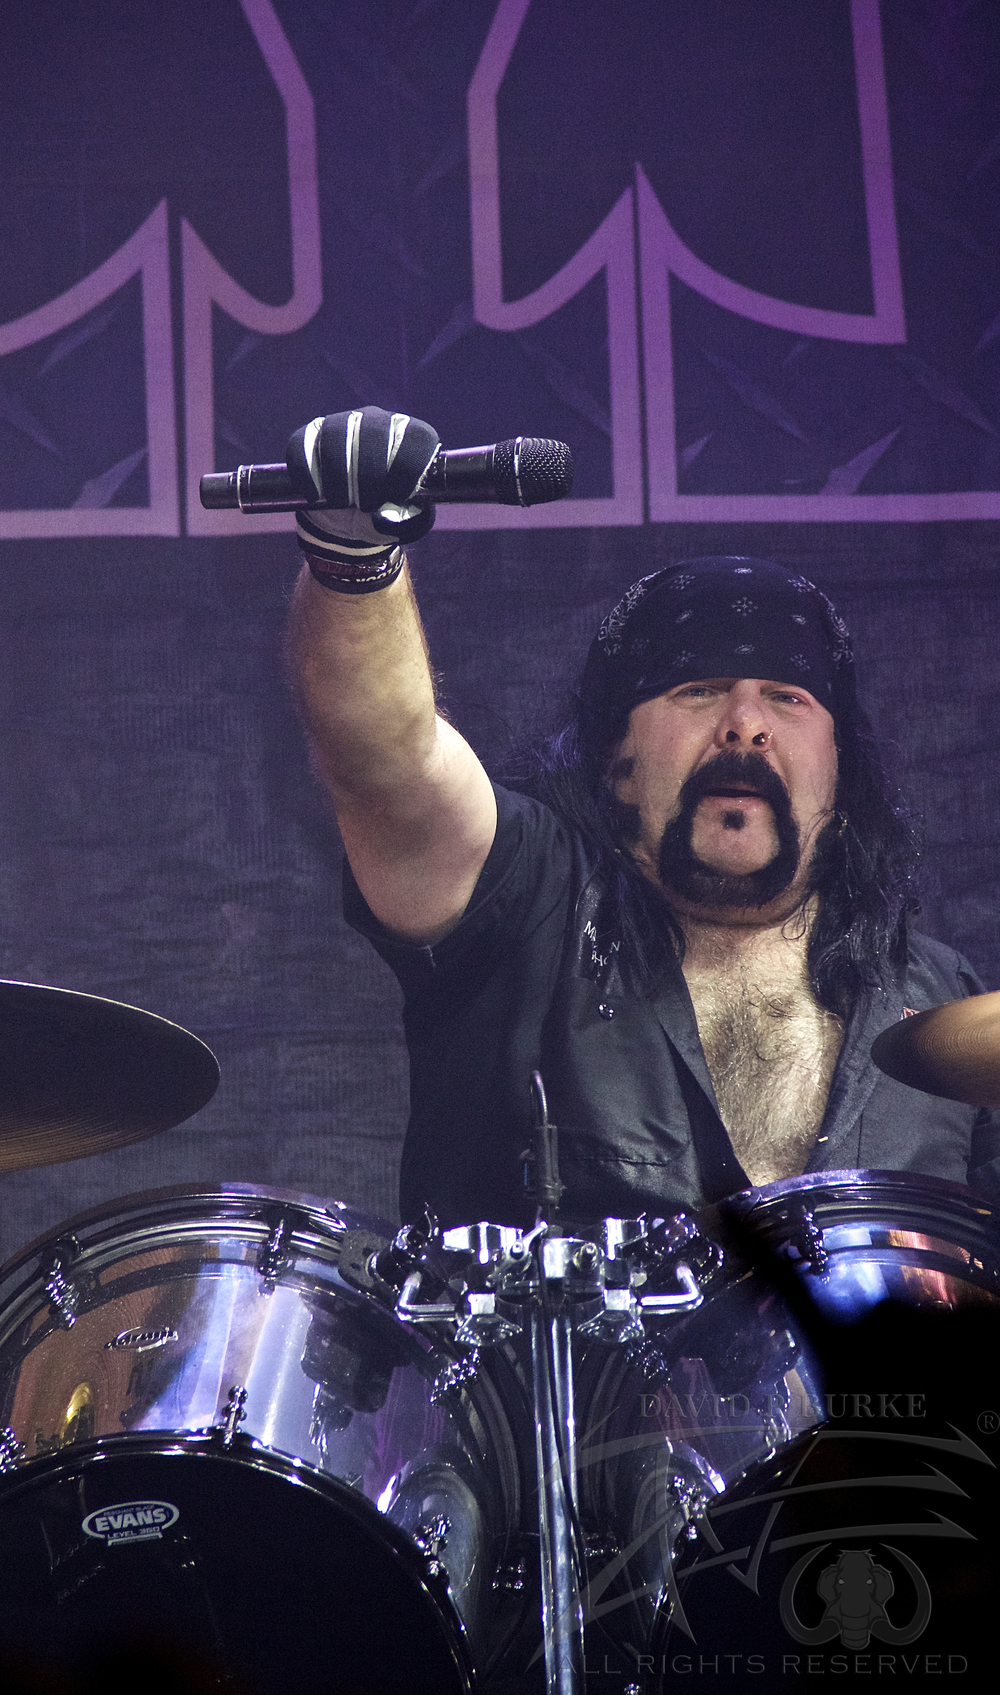 Hellyeah drummer Vinnie Paul    photo: David Burke